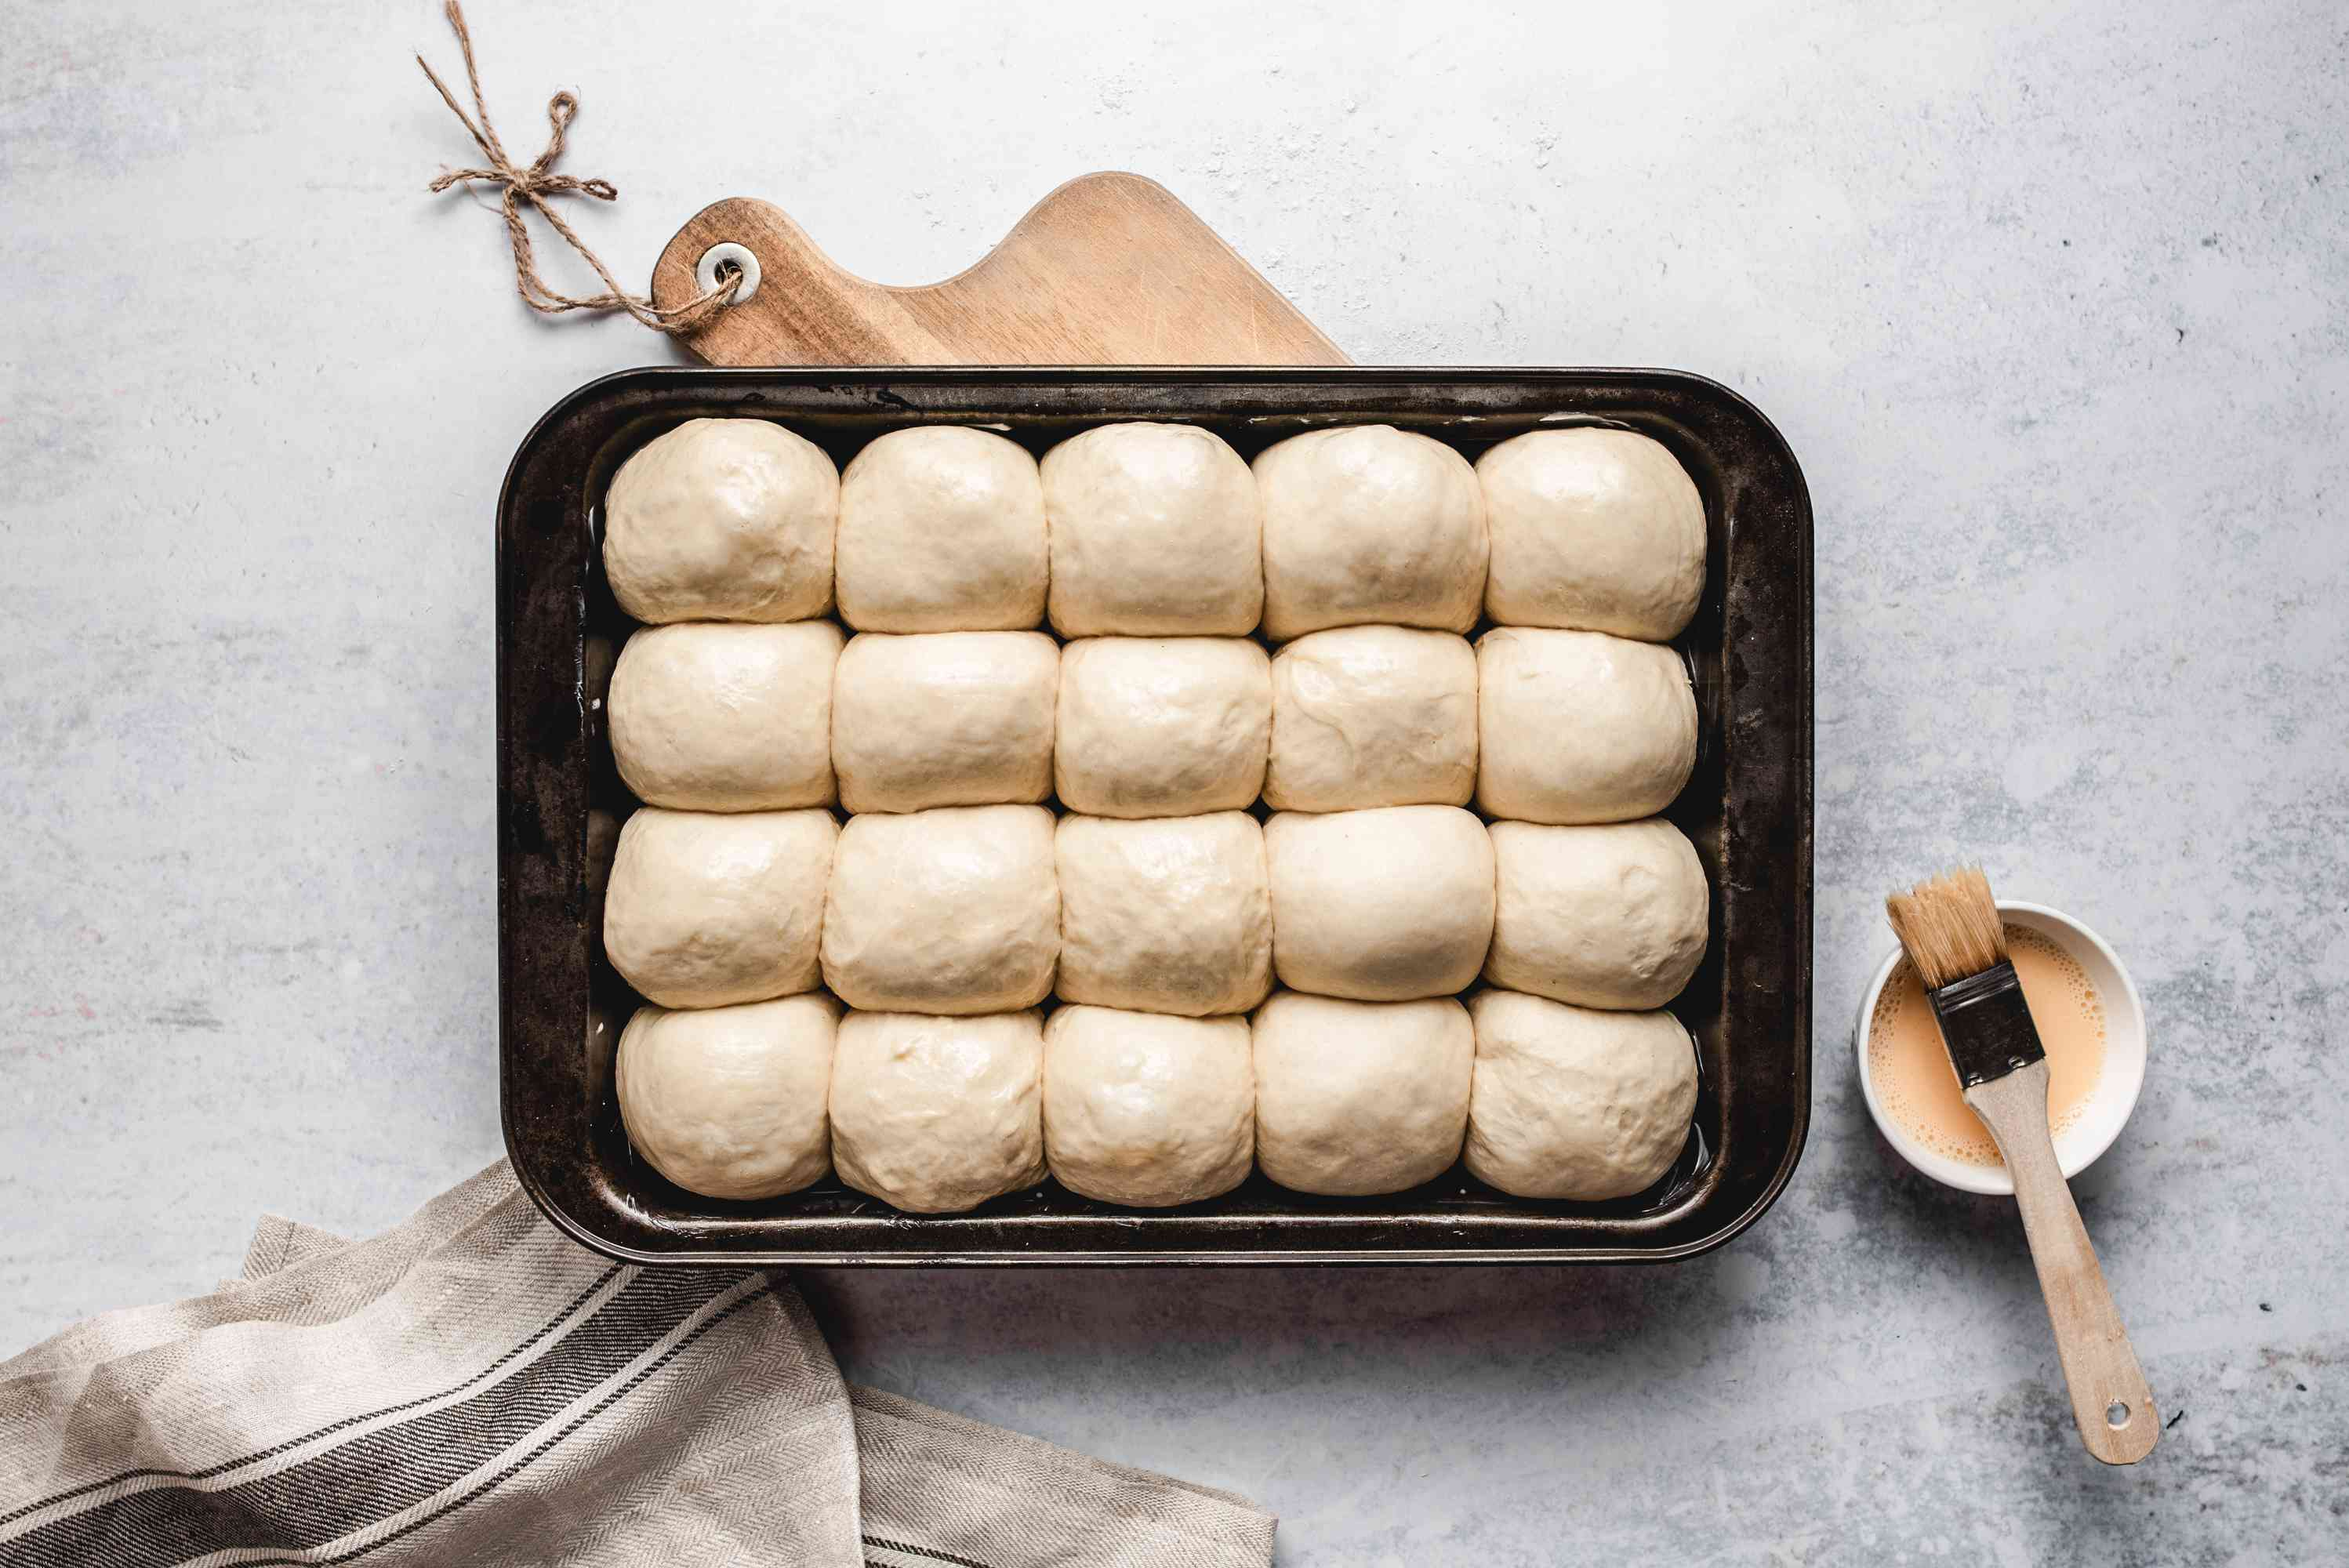 Dinner rolls unbaked in a baking sheet with an egg wash